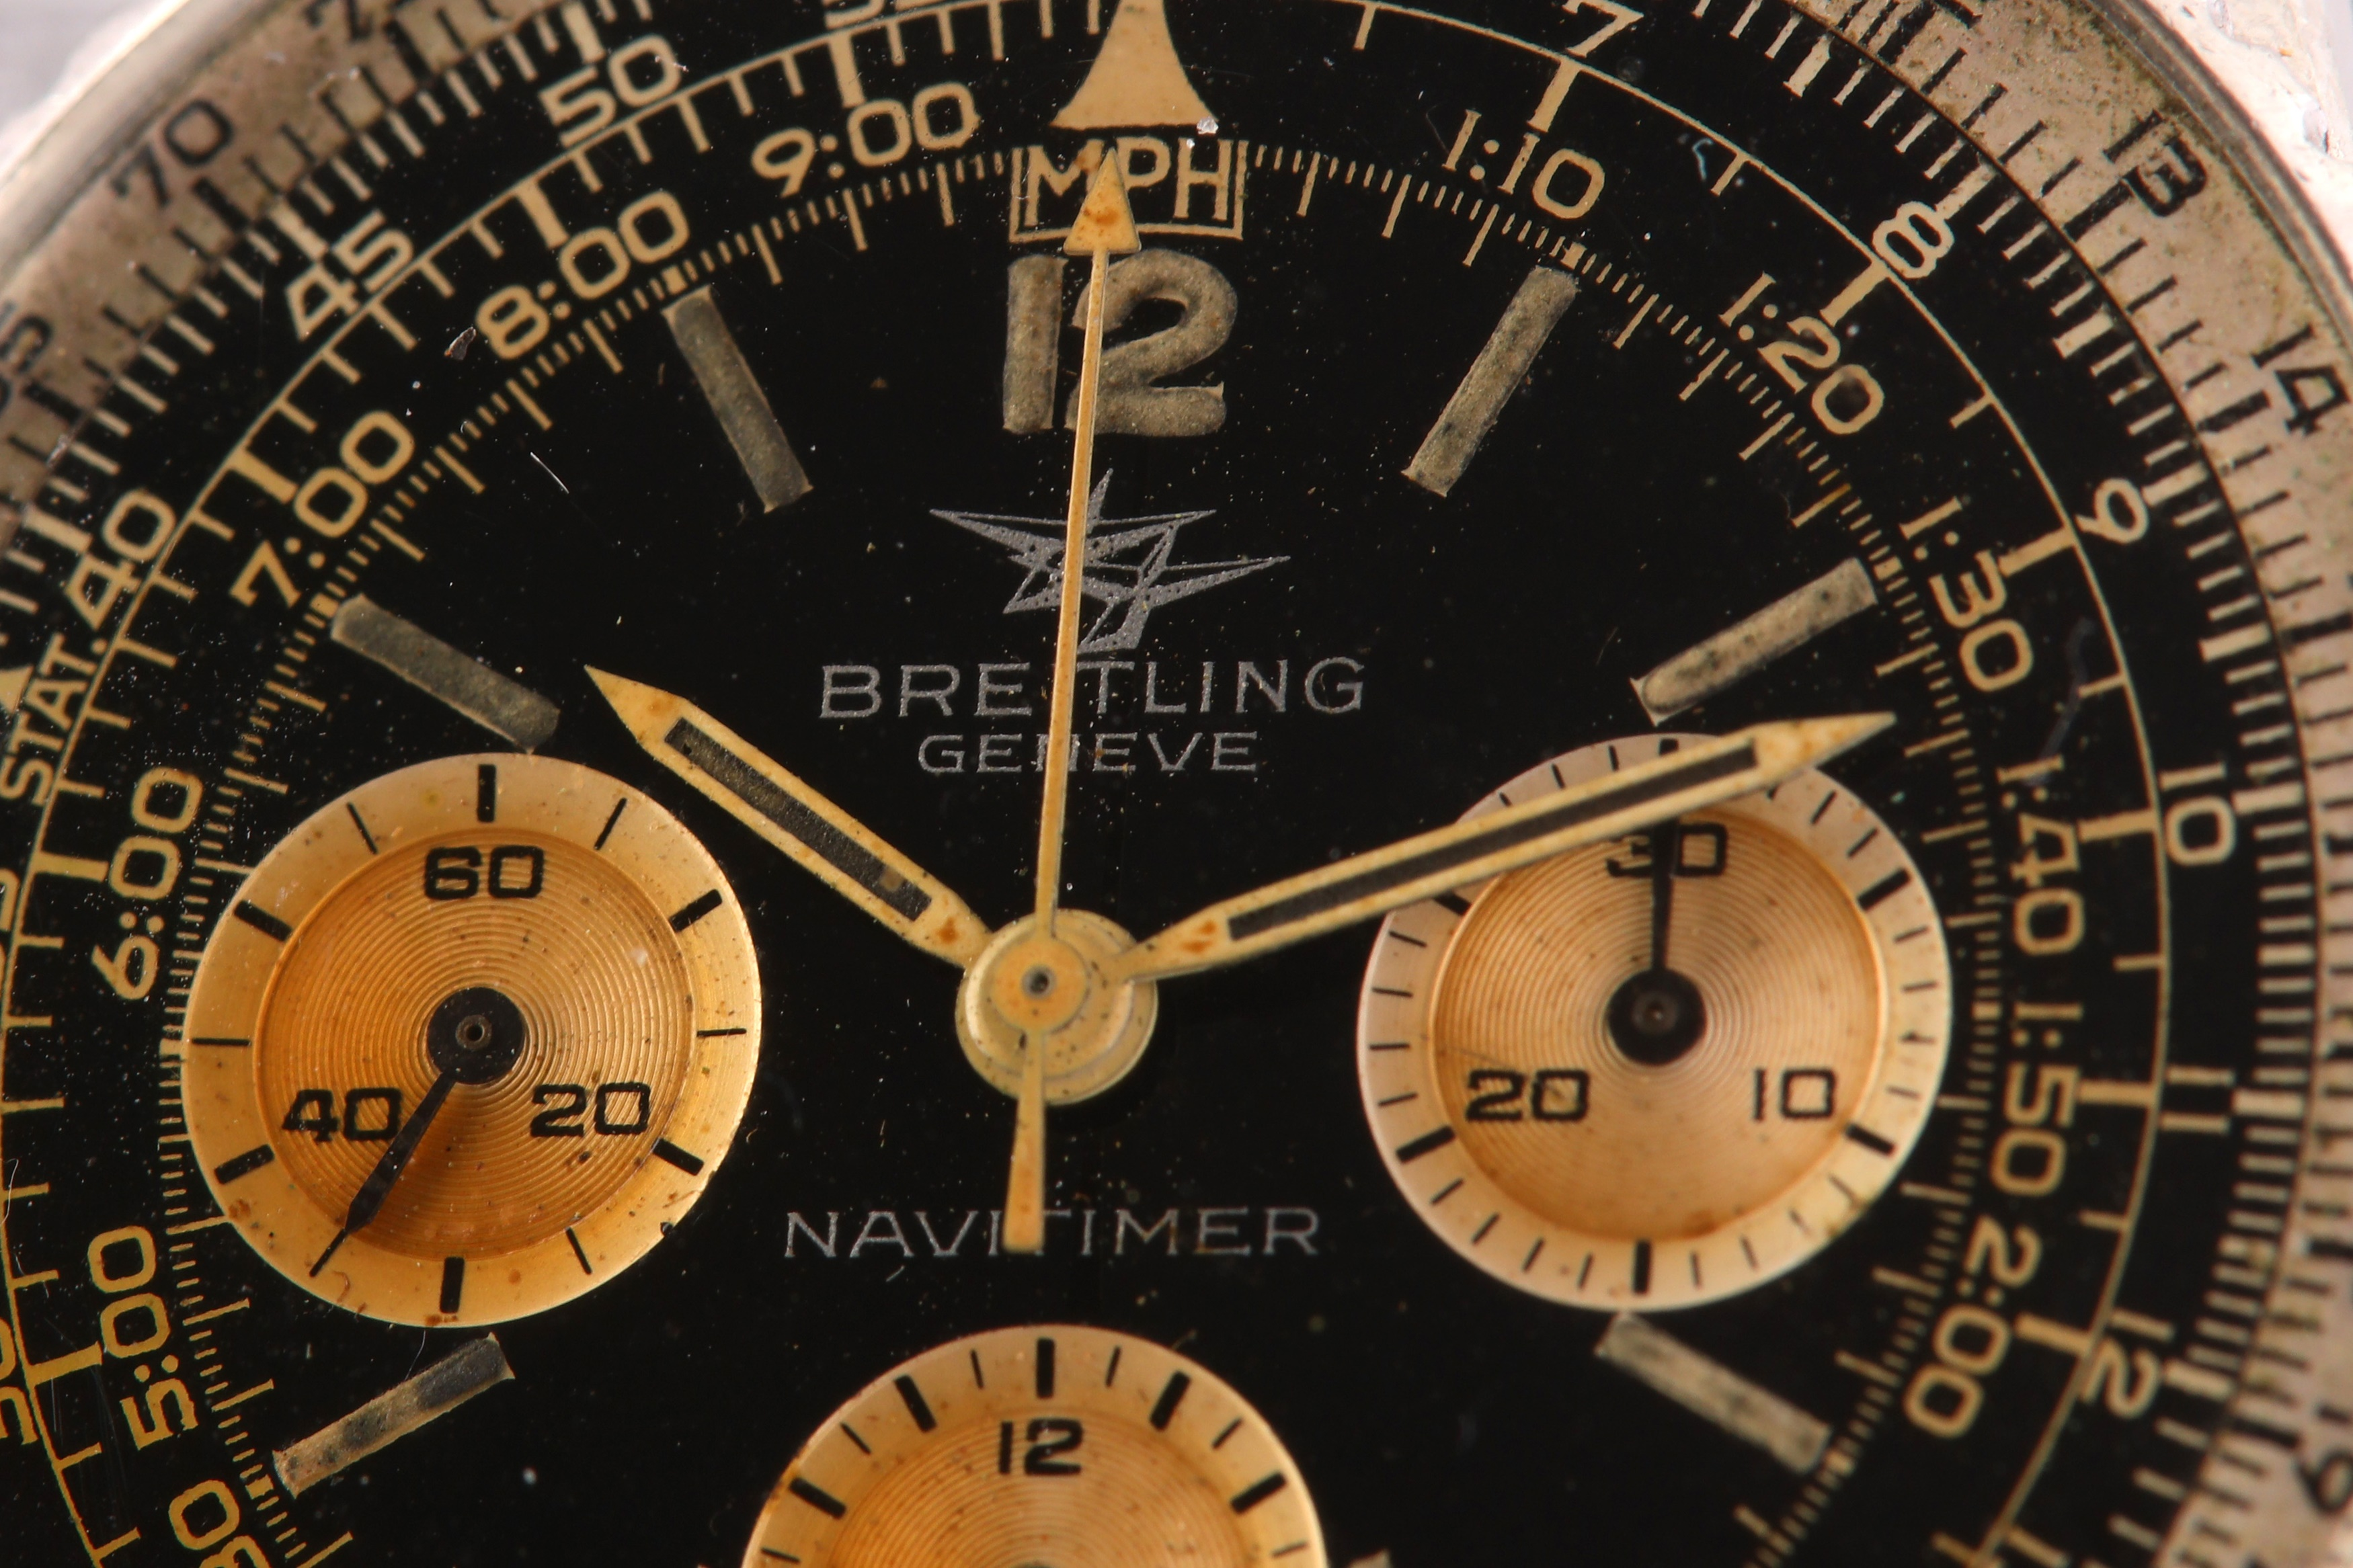 BREITLING. - Image 2 of 8